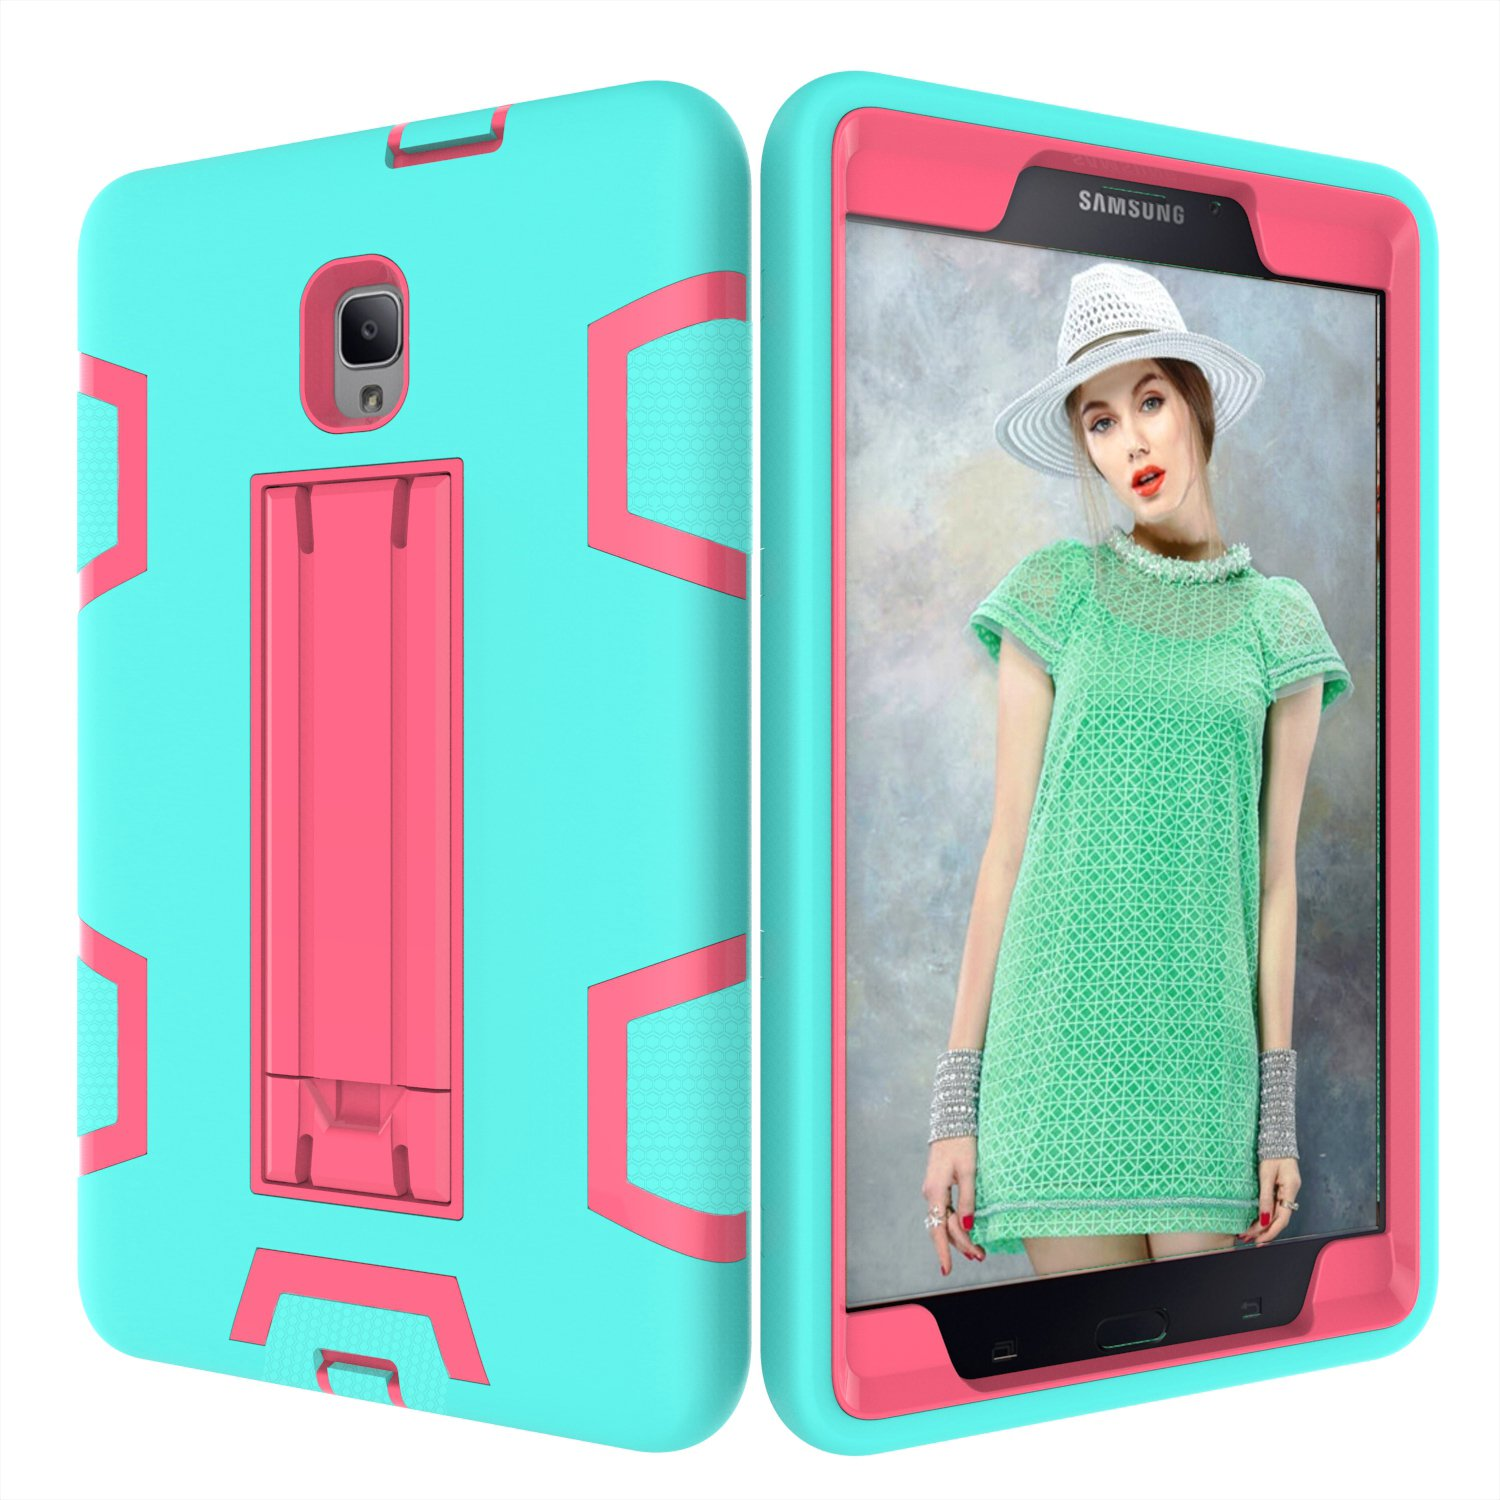 PPSHA Samsung Galaxy Tab A 8.0 2017 Case, High Impact Armor Heavy Duty Hybrid Shockproof Protection Cover Built With Stand for Galaxy Tab A 8.0 (SM-T380/T385) 2017 Release (Teal+Rose) by PPSHA (Image #2)